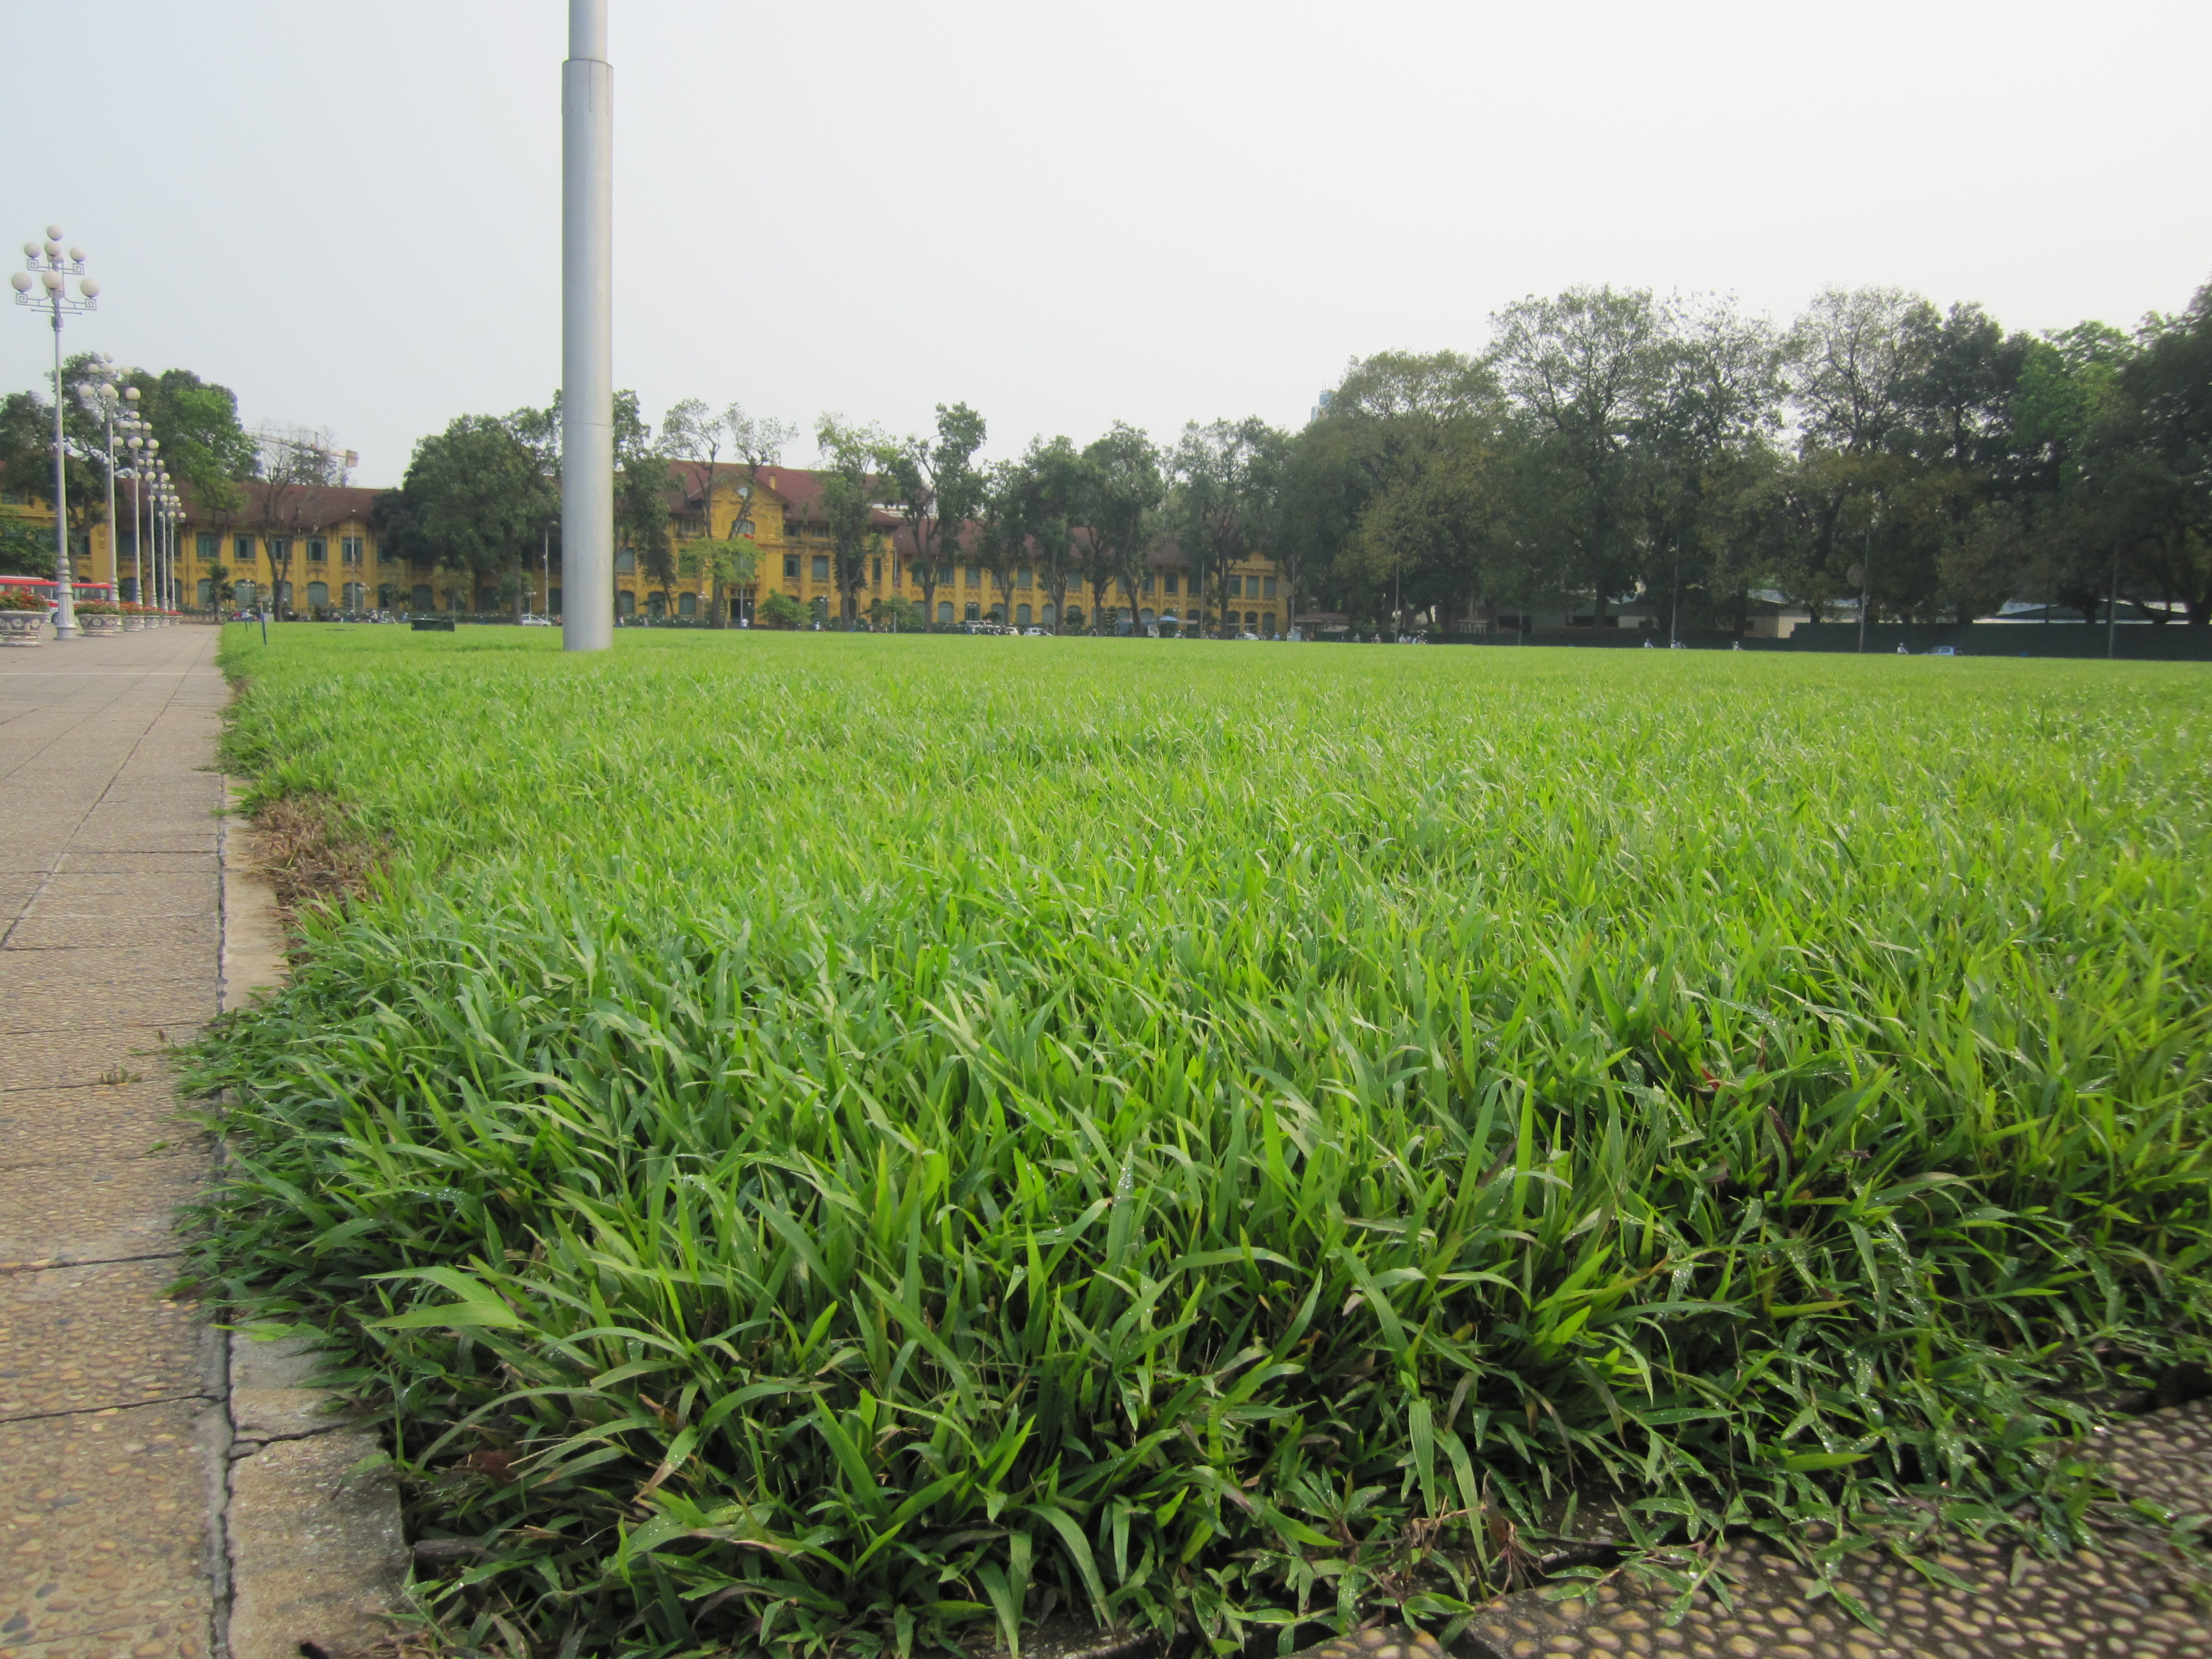 Grass fields representing the different provinces of Vietnam with the Parliamentary building (I think?) in the background.